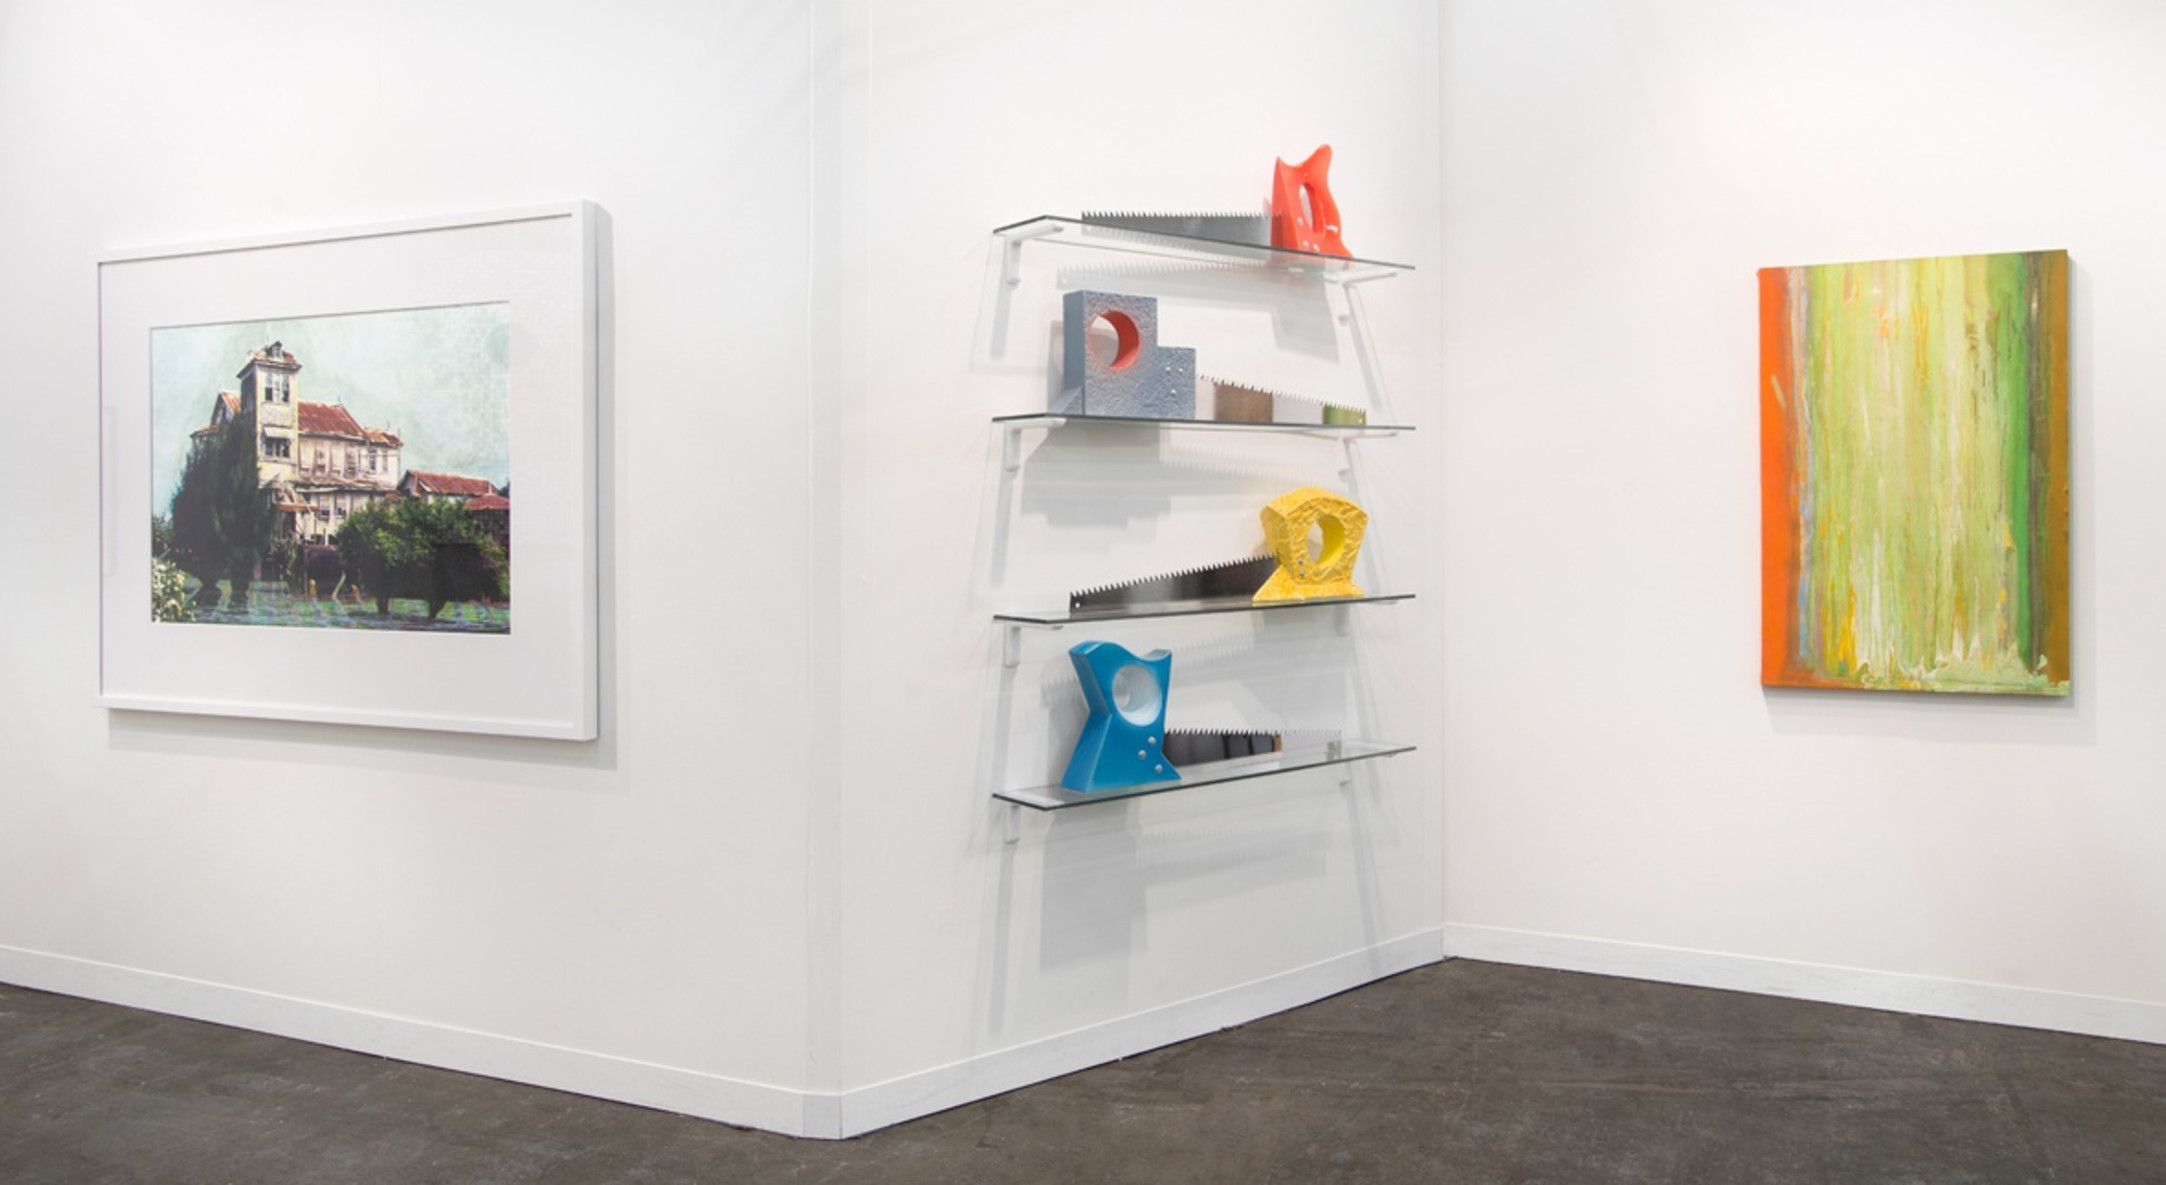 Installation view of Hales Gallery booth at The Armory Show 2015